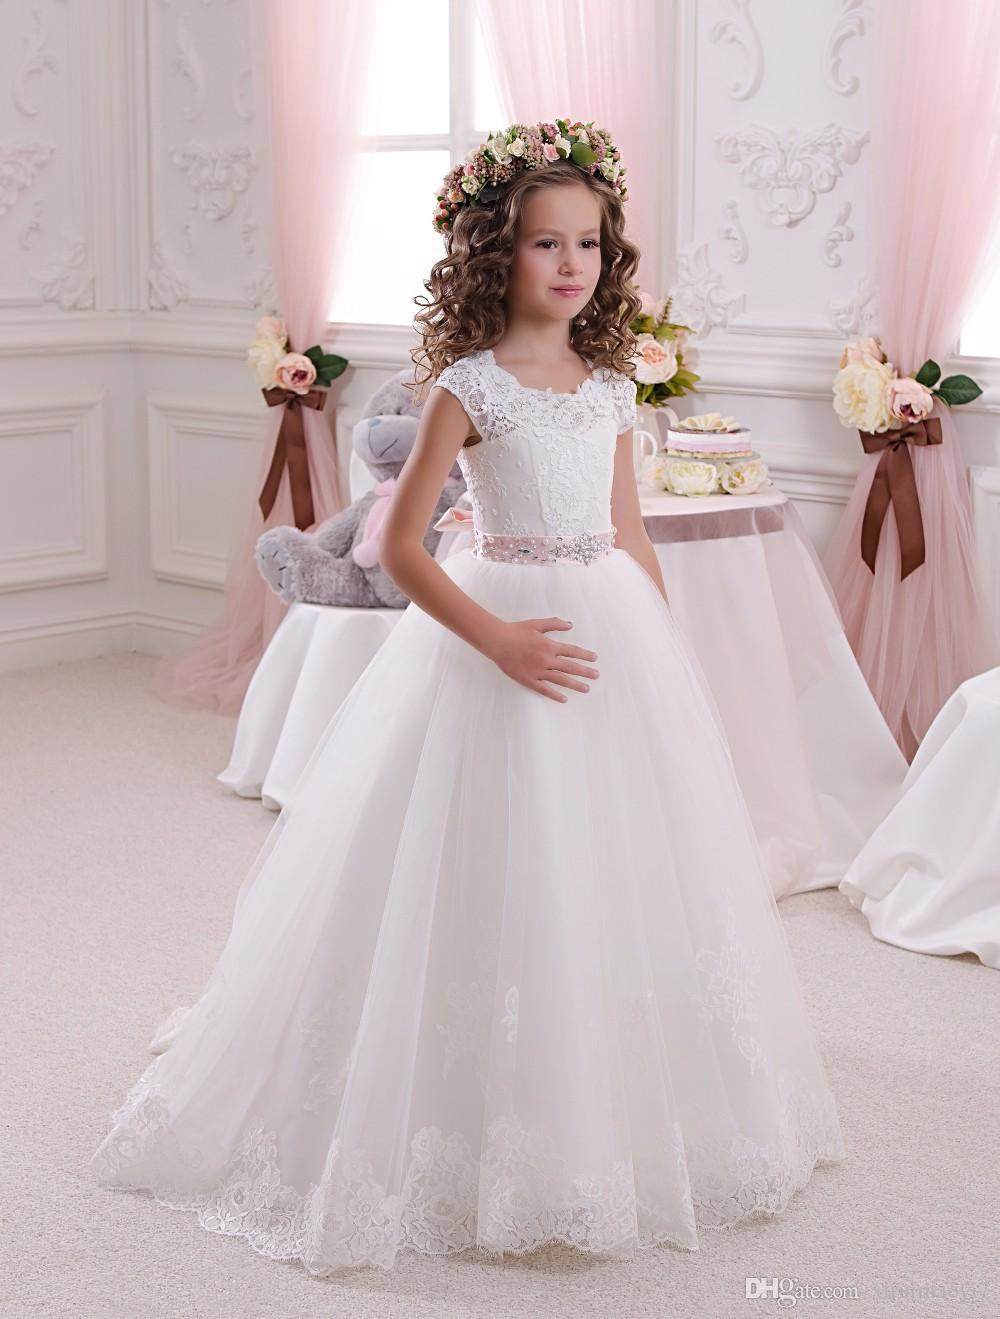 Wedding Flower Girl Dresses Party Pageant Princess Formal Baptismal Communion